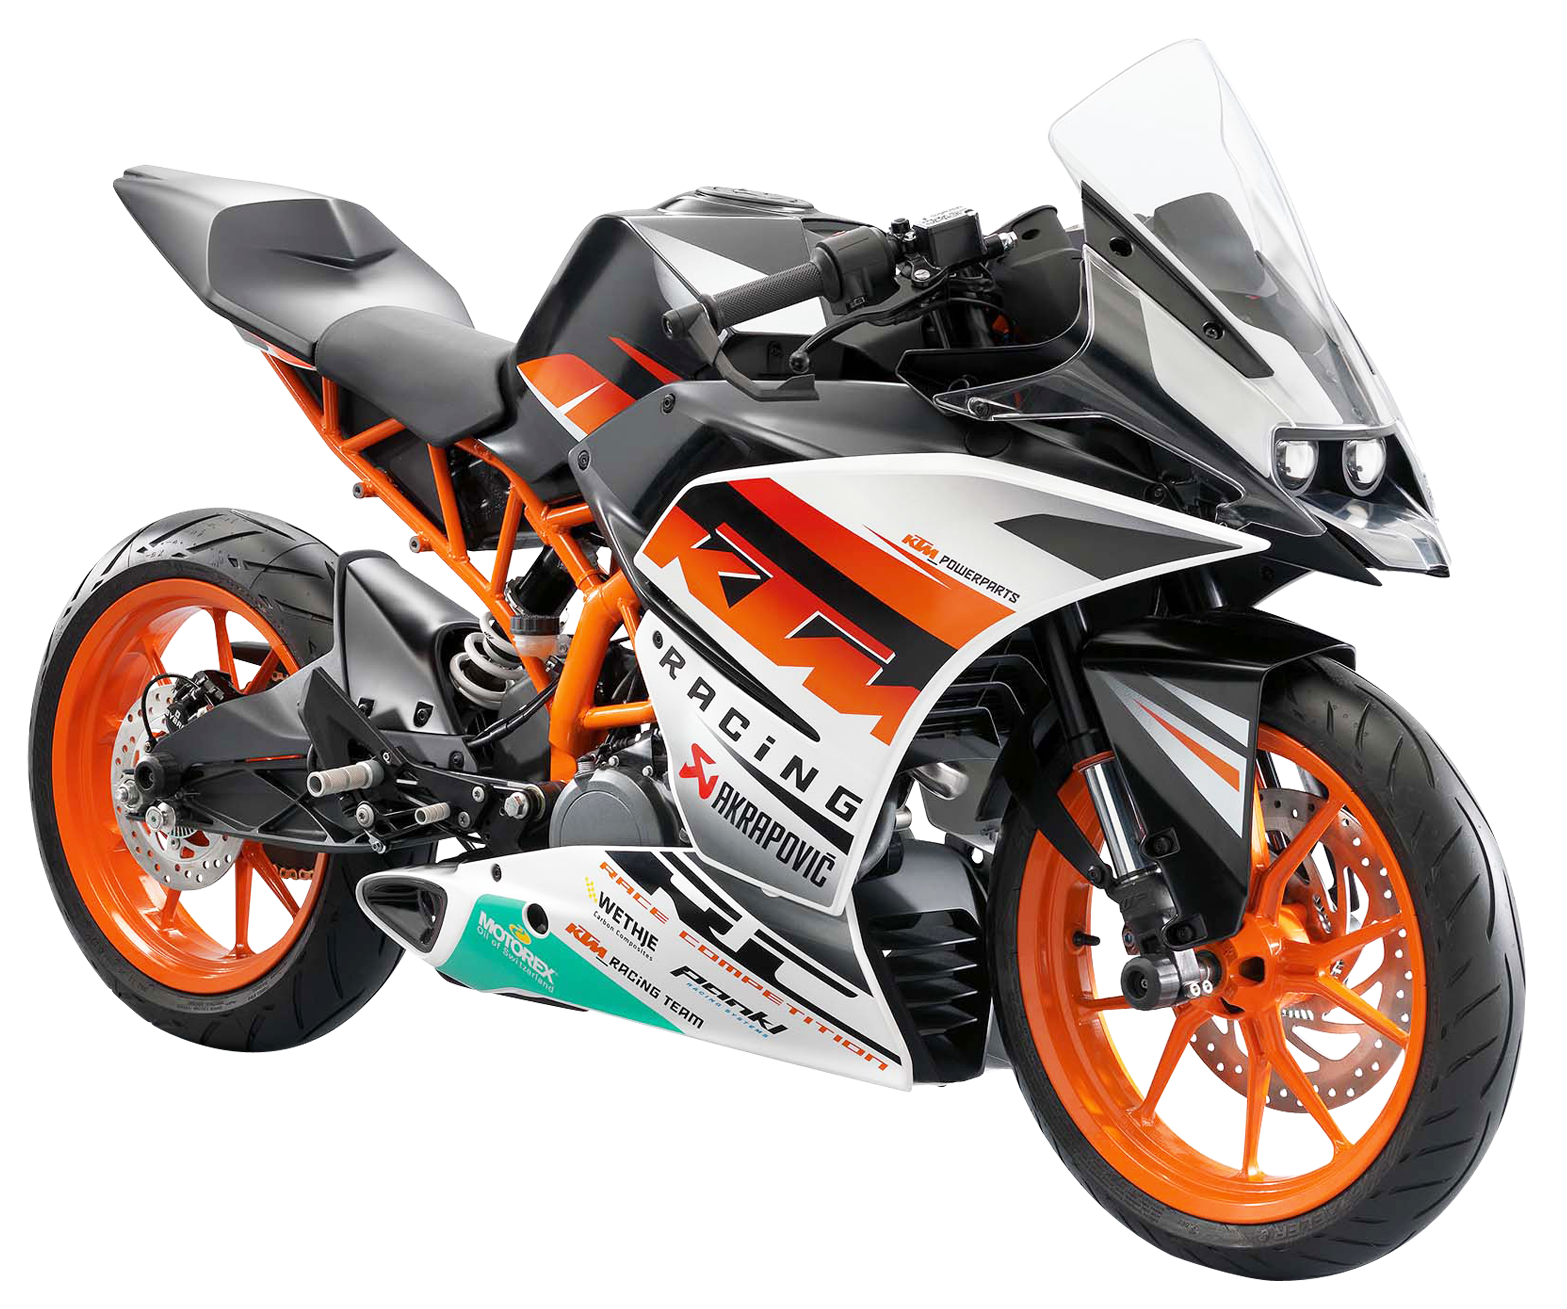 Motorcycle clipart motorcycle shop. Ktm png images pngpix